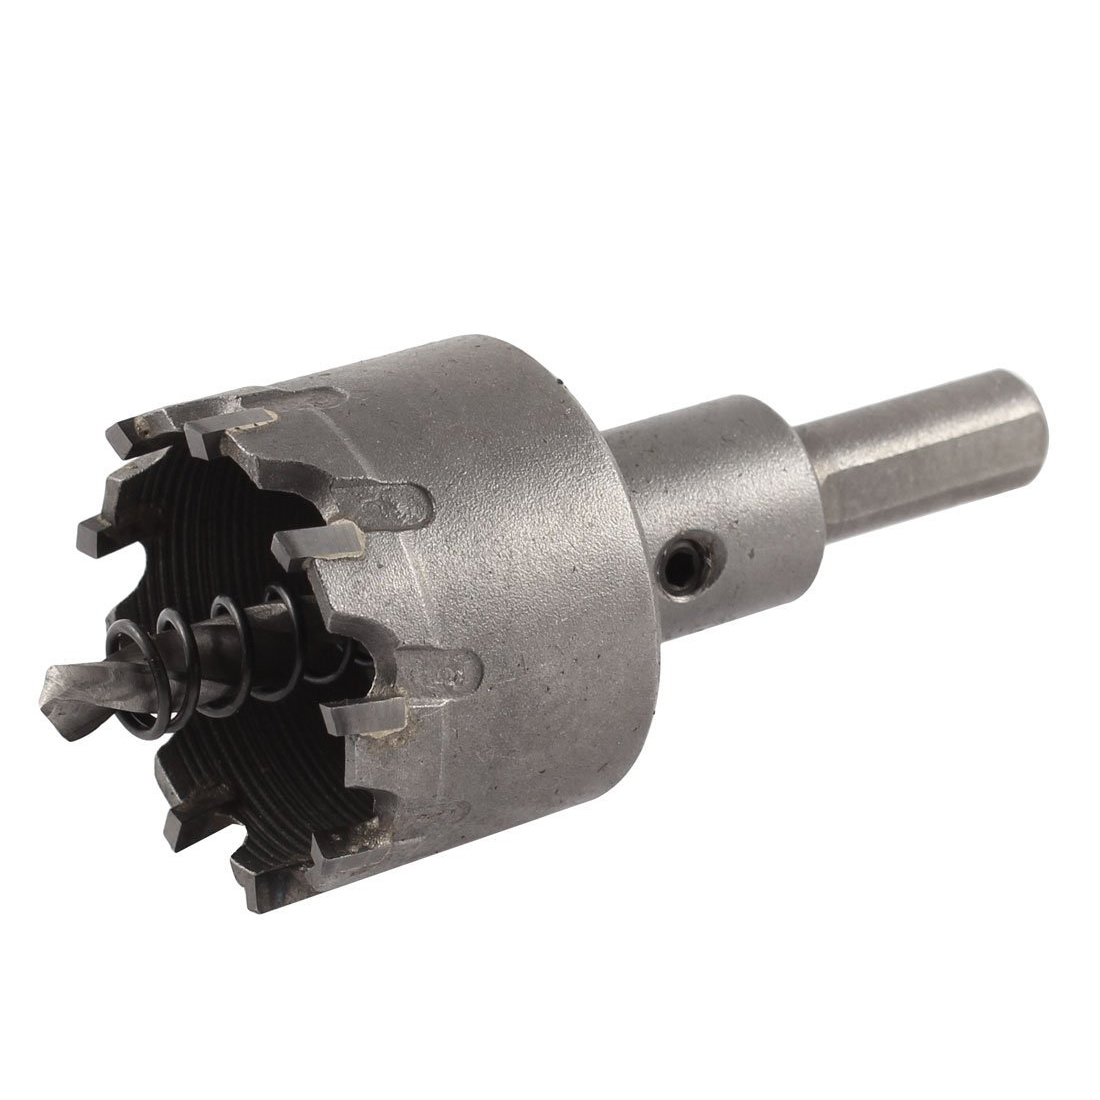 Подробнее о EWS Triangle Shank 6mm Twist Drill Bit 38mm Dia Stainless Steel Hole Saw Cutter uxcell 6mm twist drill bit 21mm cutting dia stainless steel plate hole saw cutter